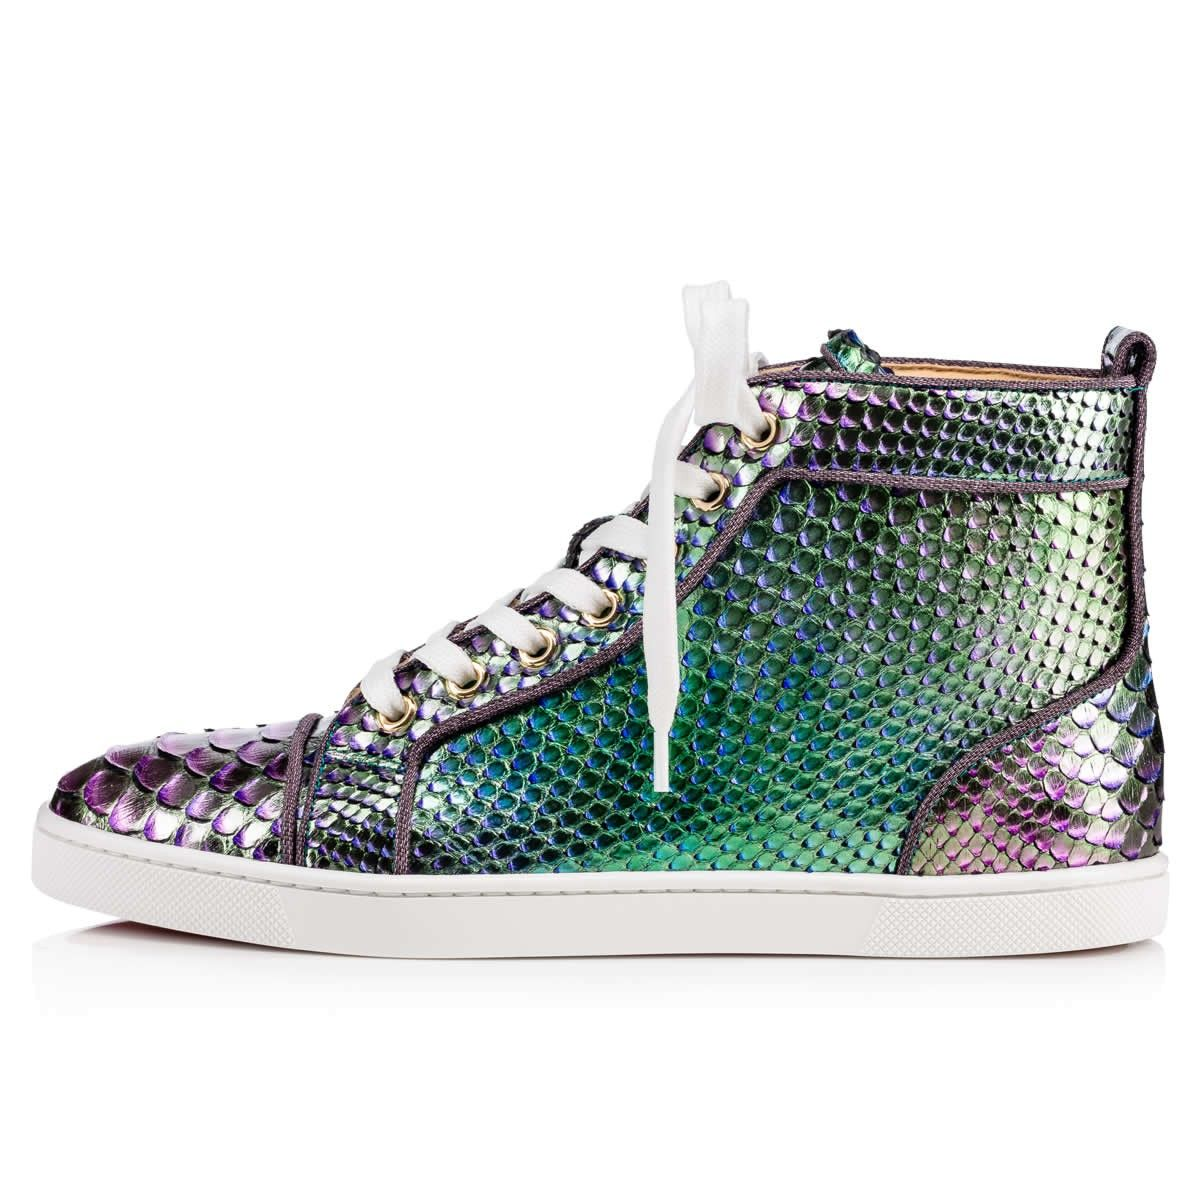 Women Shoes - Bip Bip Woman Orlato Python Scarabee - Christian Louboutin